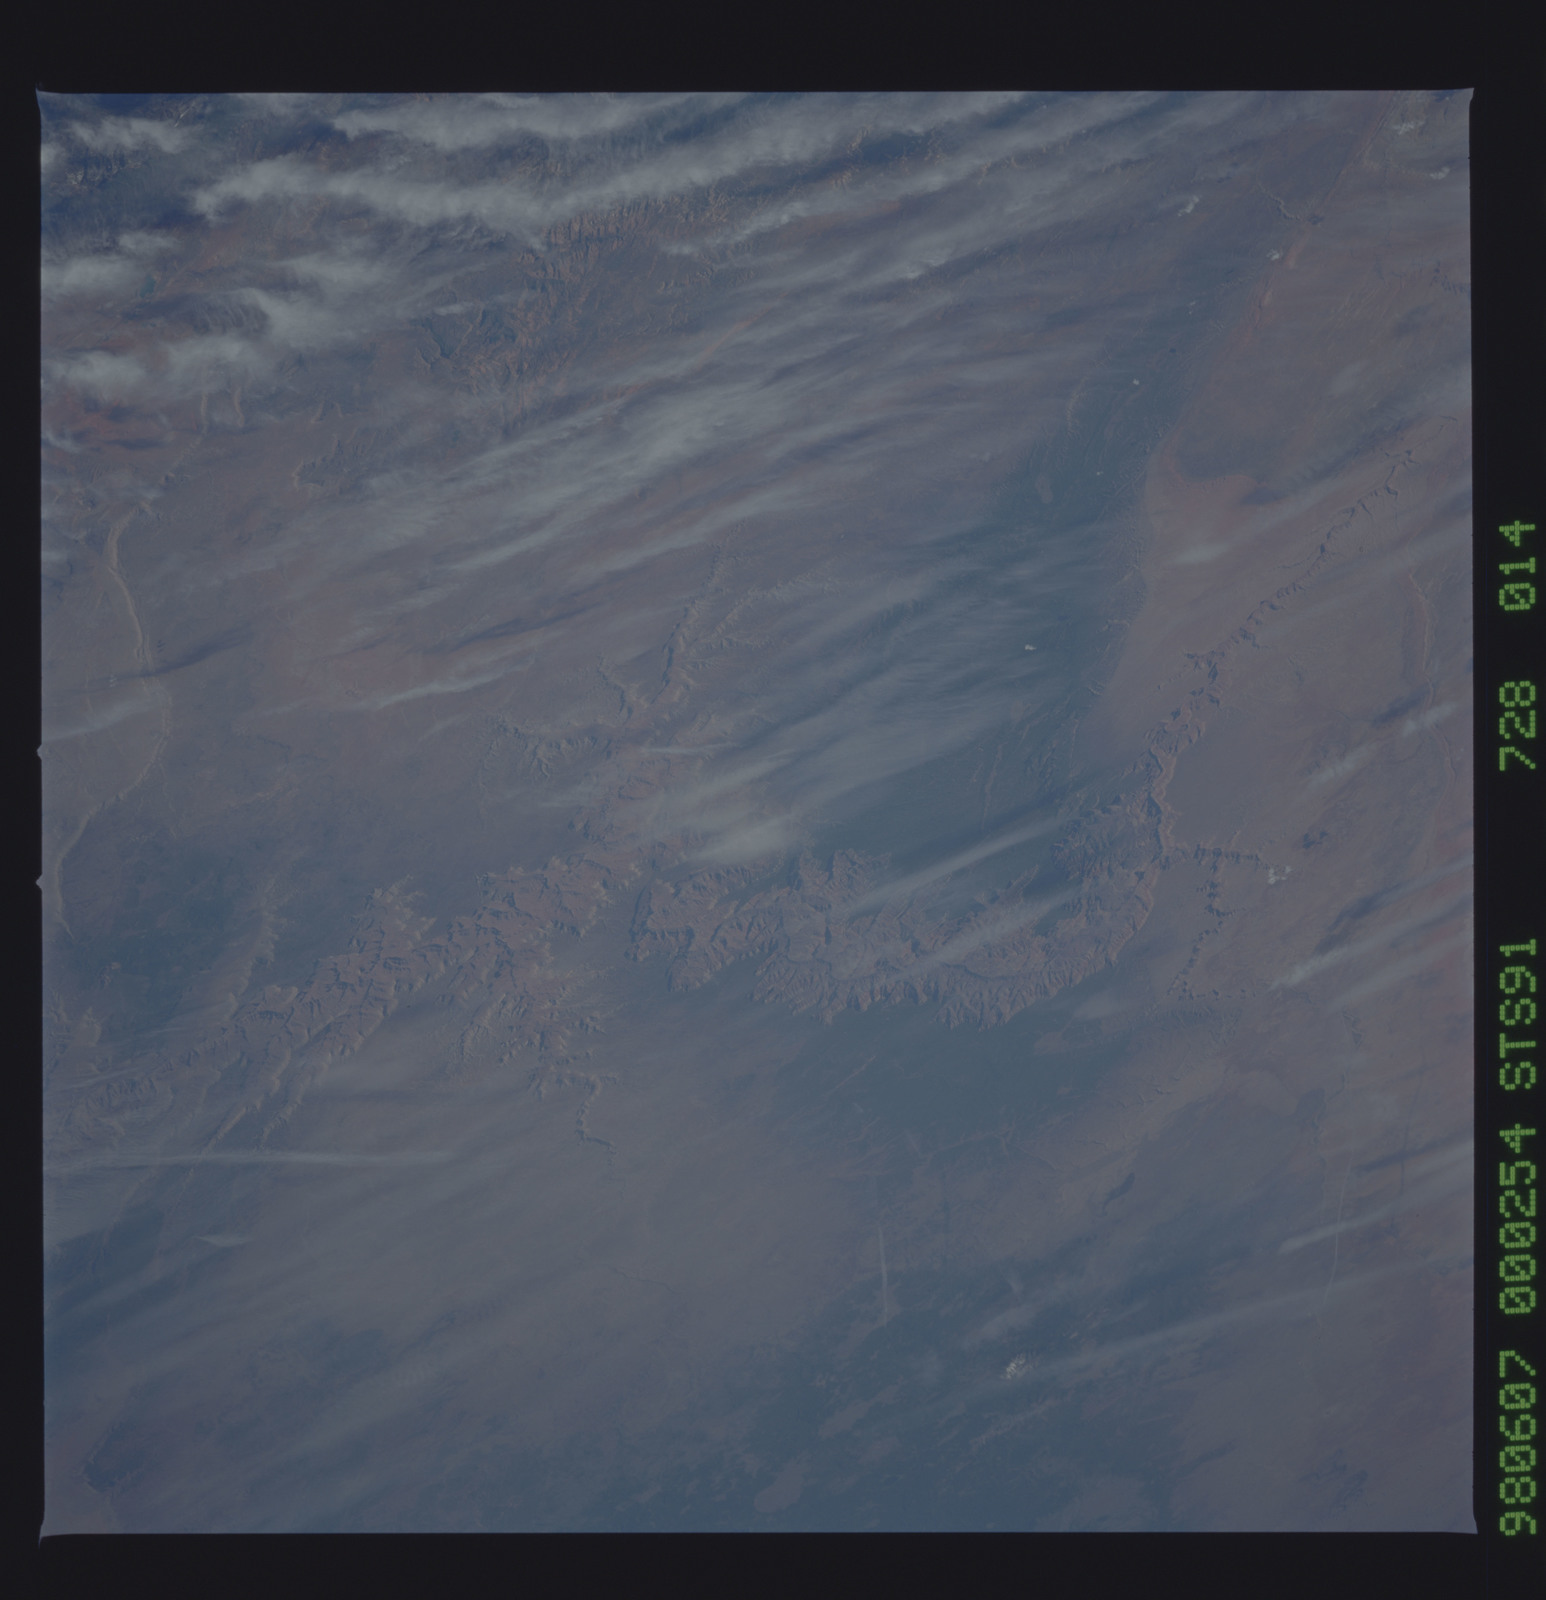 STS091-728-014 - STS-091 - Earth observations taken from orbiter Discovery during STS-91 mission